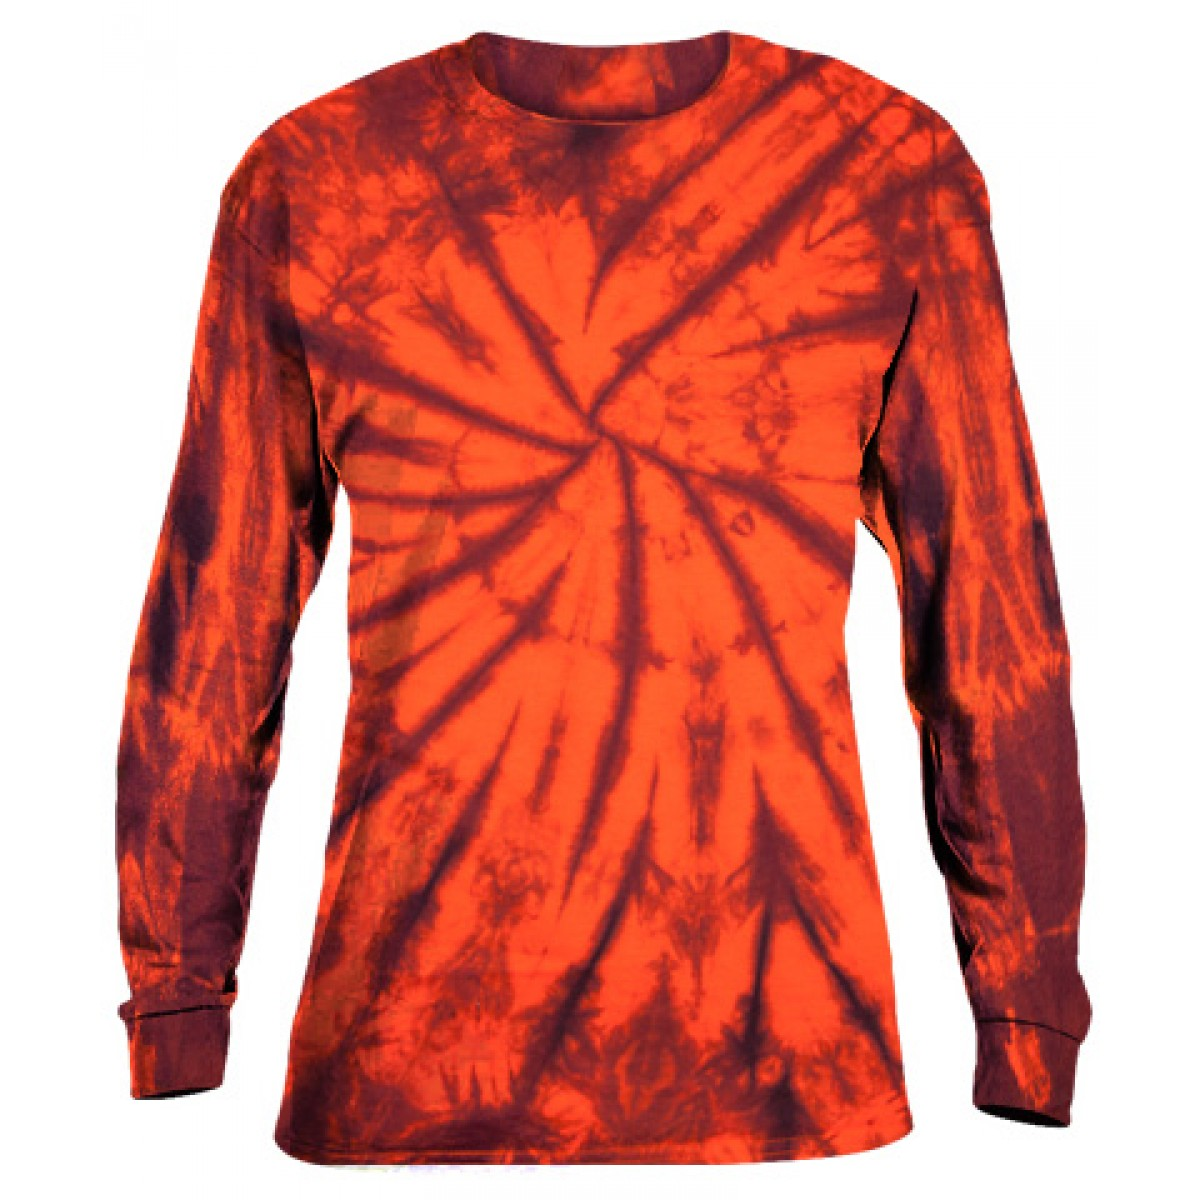 Tie-Dye Long Sleeve Shirt -Orange-YL